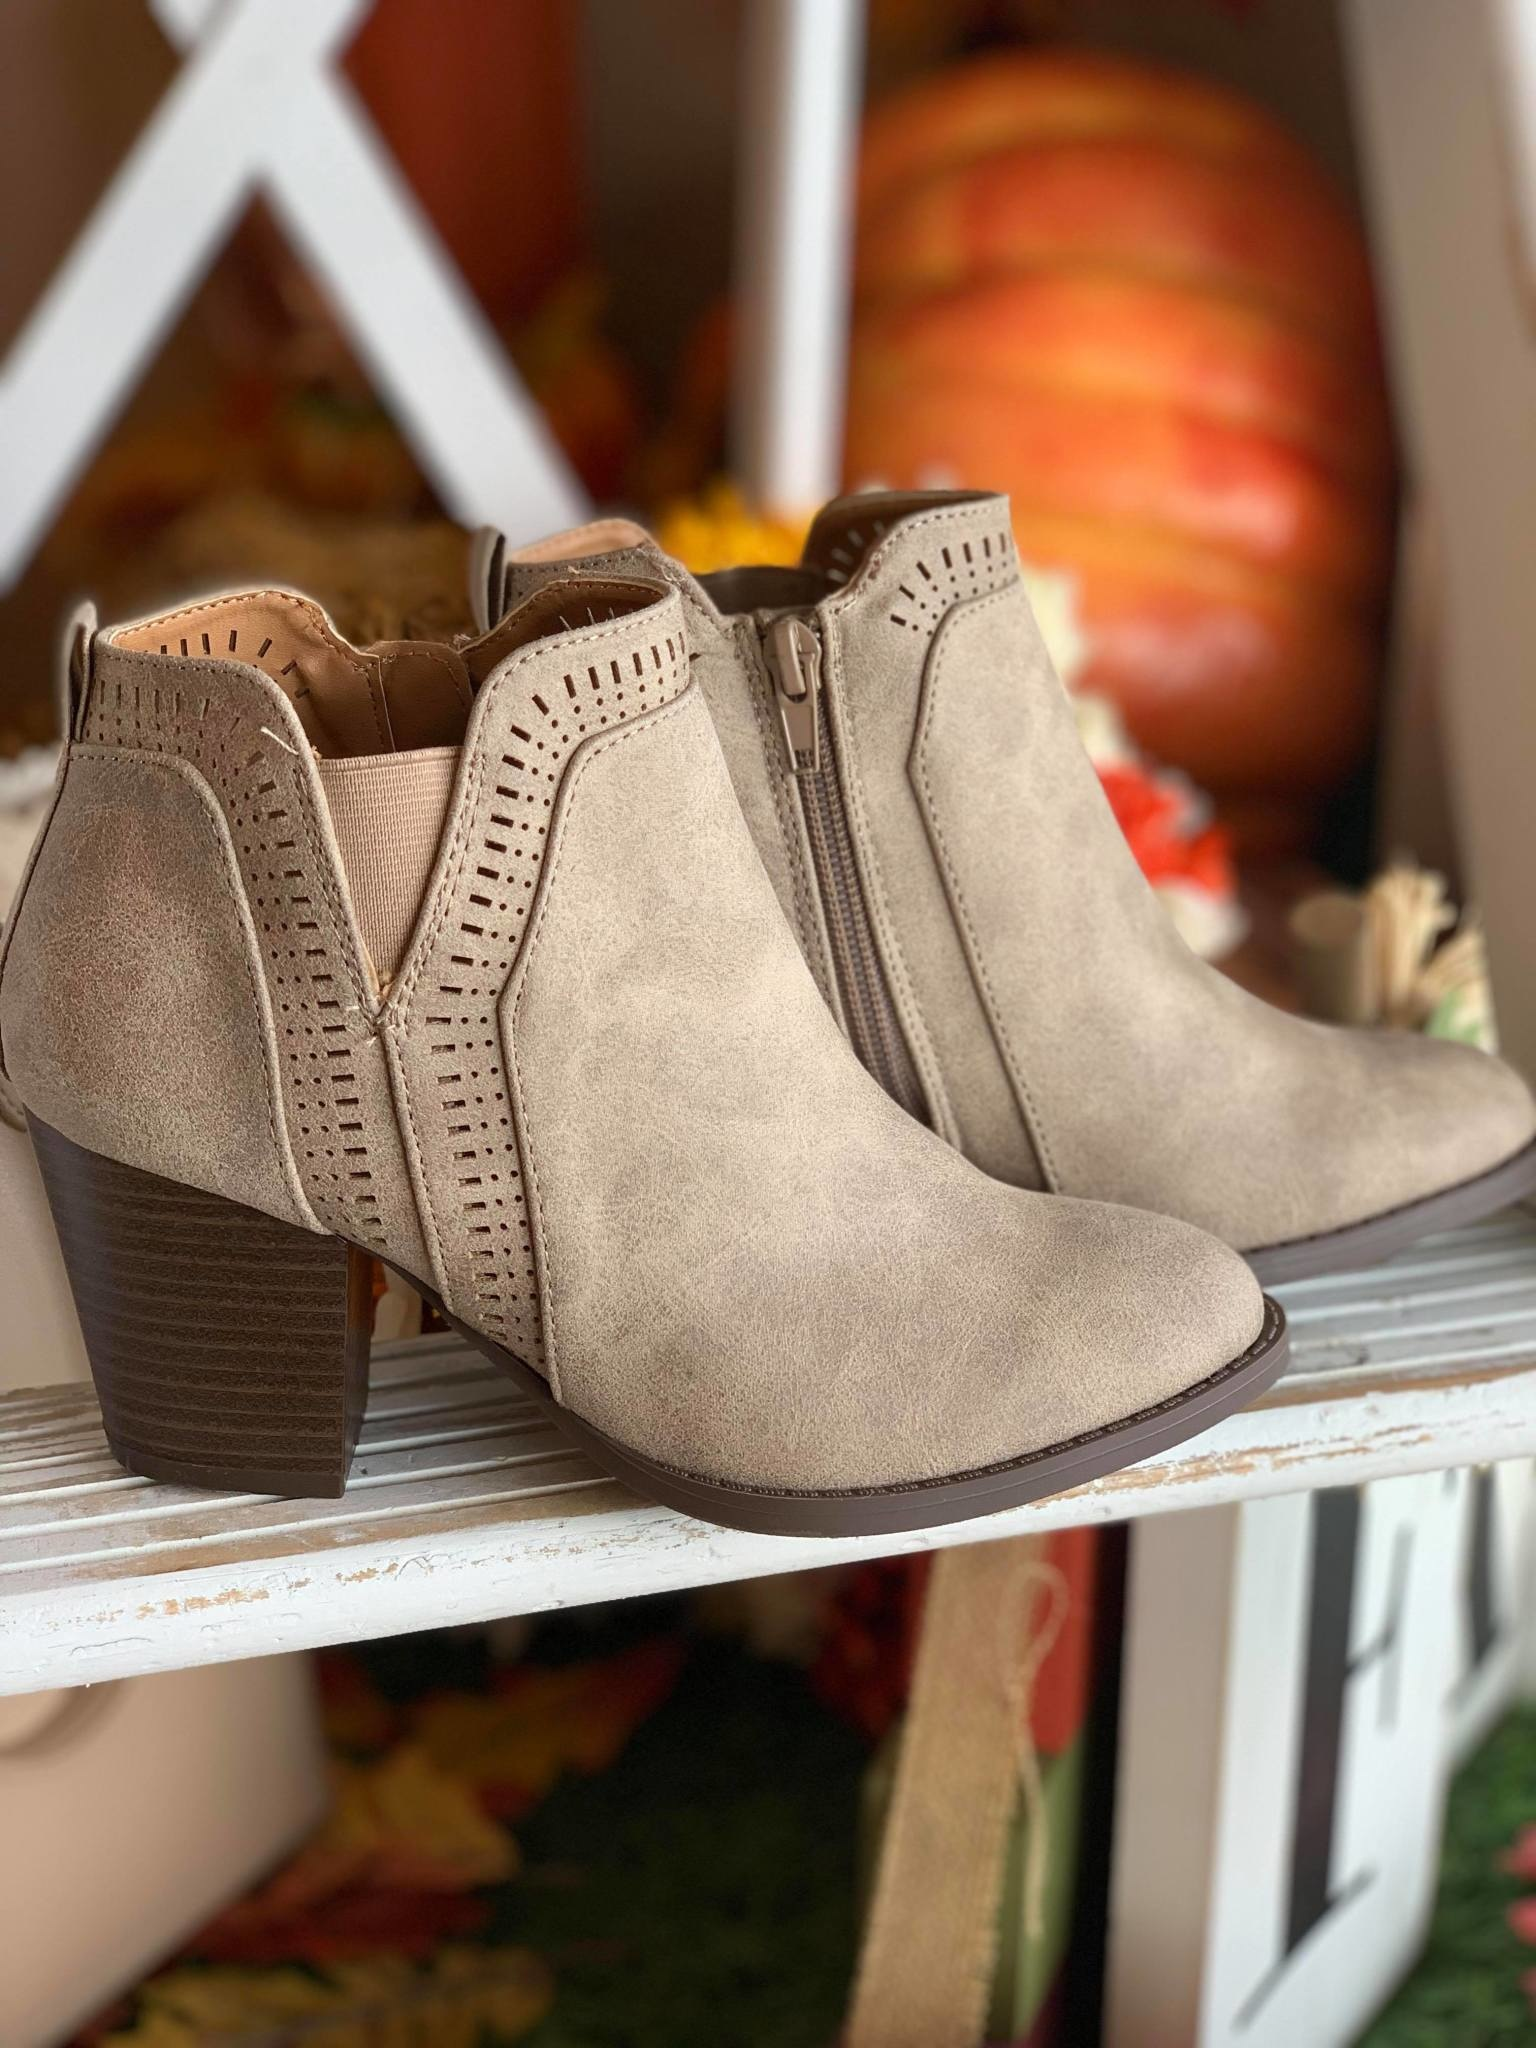 All the Way Booties